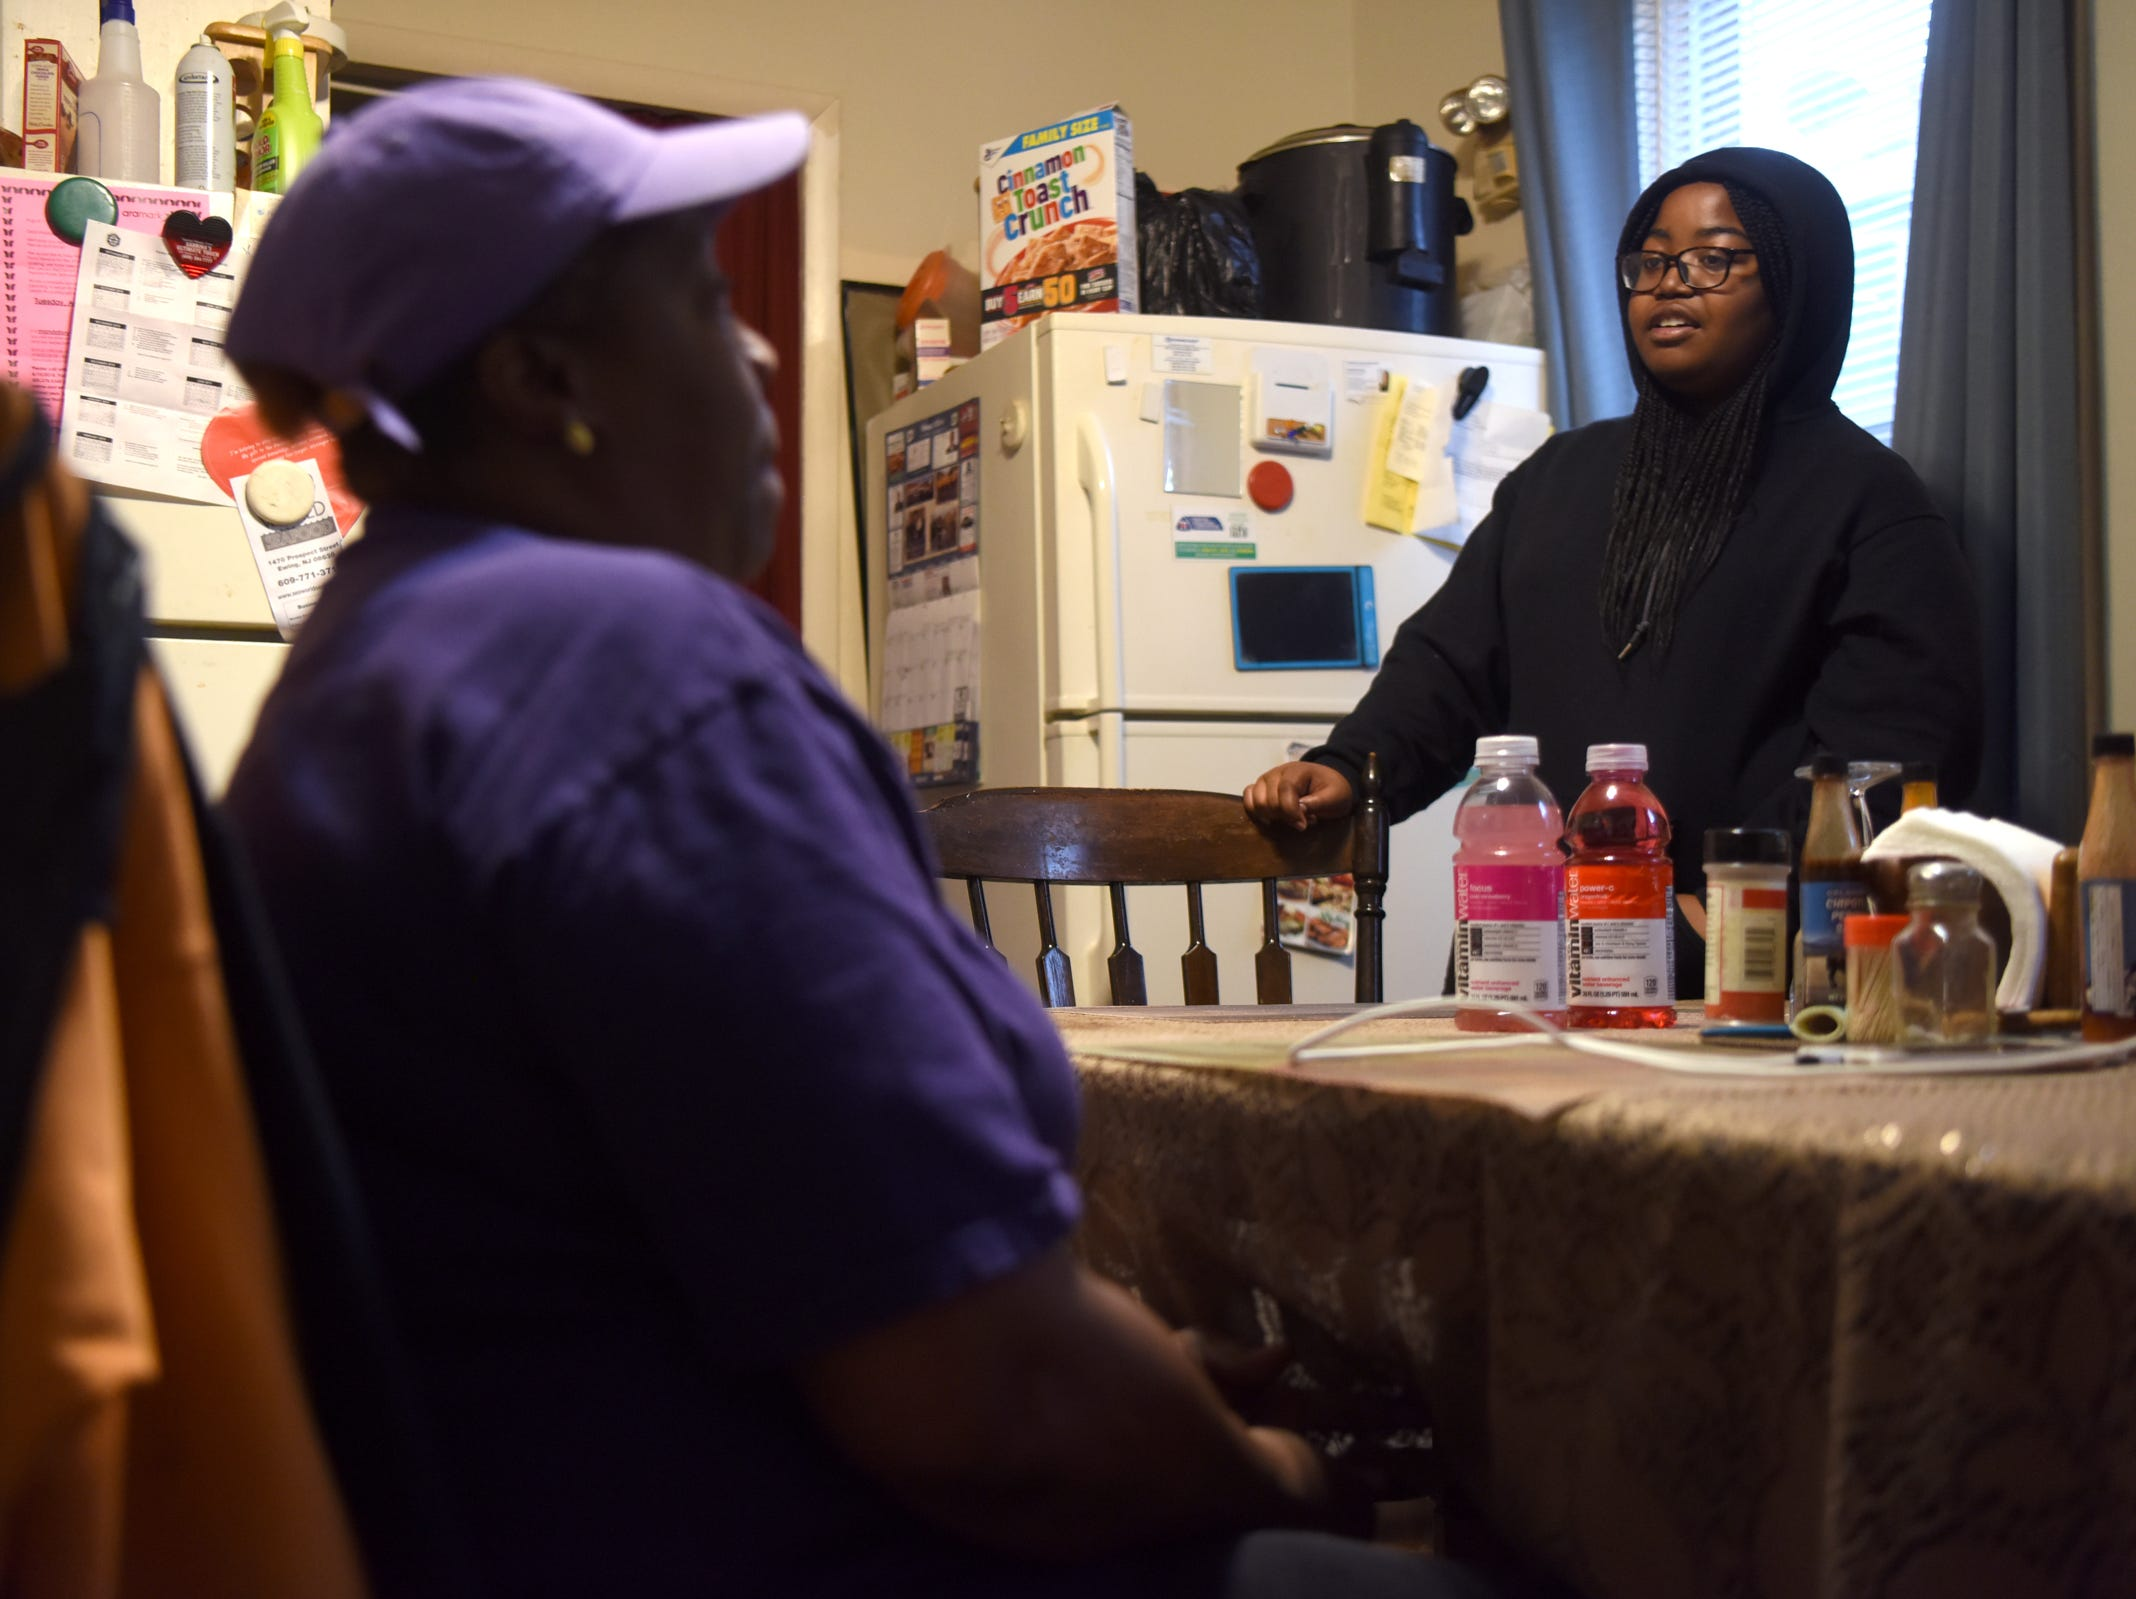 Leslie Hall and her daughter Princess, 14, stick to a strict budget to make Mann's salary of $11.90 an hour as a food service worker stretch out to meet their needs. Hall, a homeowner in Trenton, is optimistic and excited about the recent bill Gov. Murphy signed increasing New Jersey's minimum wage to $15 an hour.